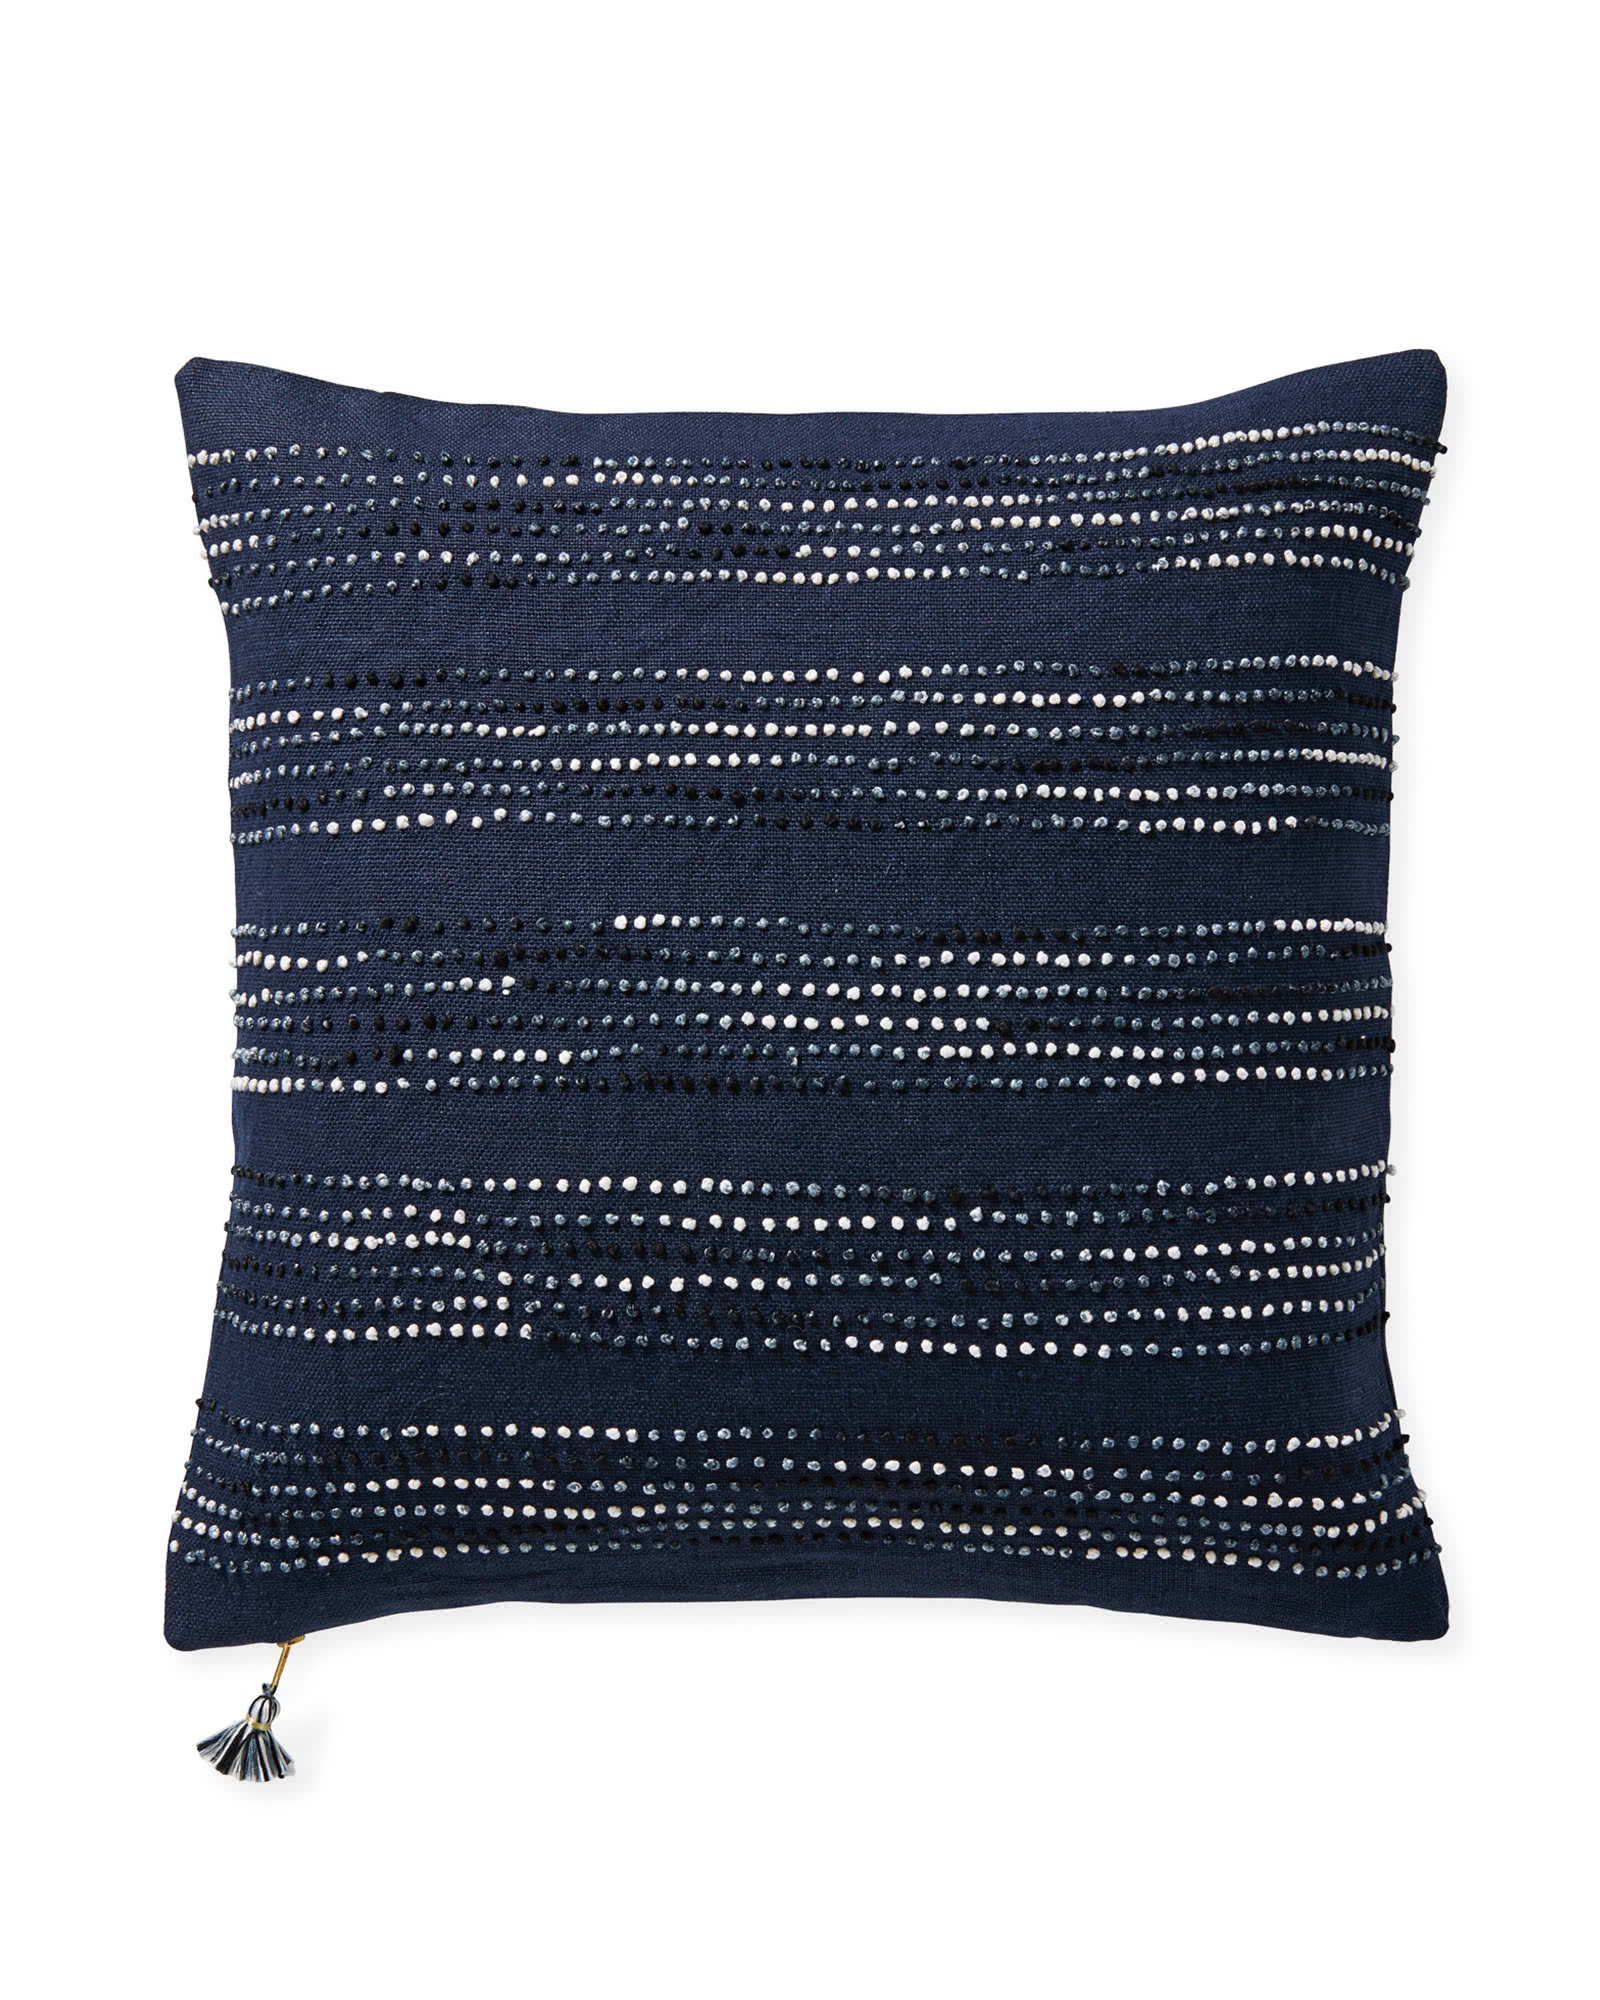 Navy pillow for sectional sofa from Serena and Lily - Living Room Design Consultation #pillows #livingroomideas